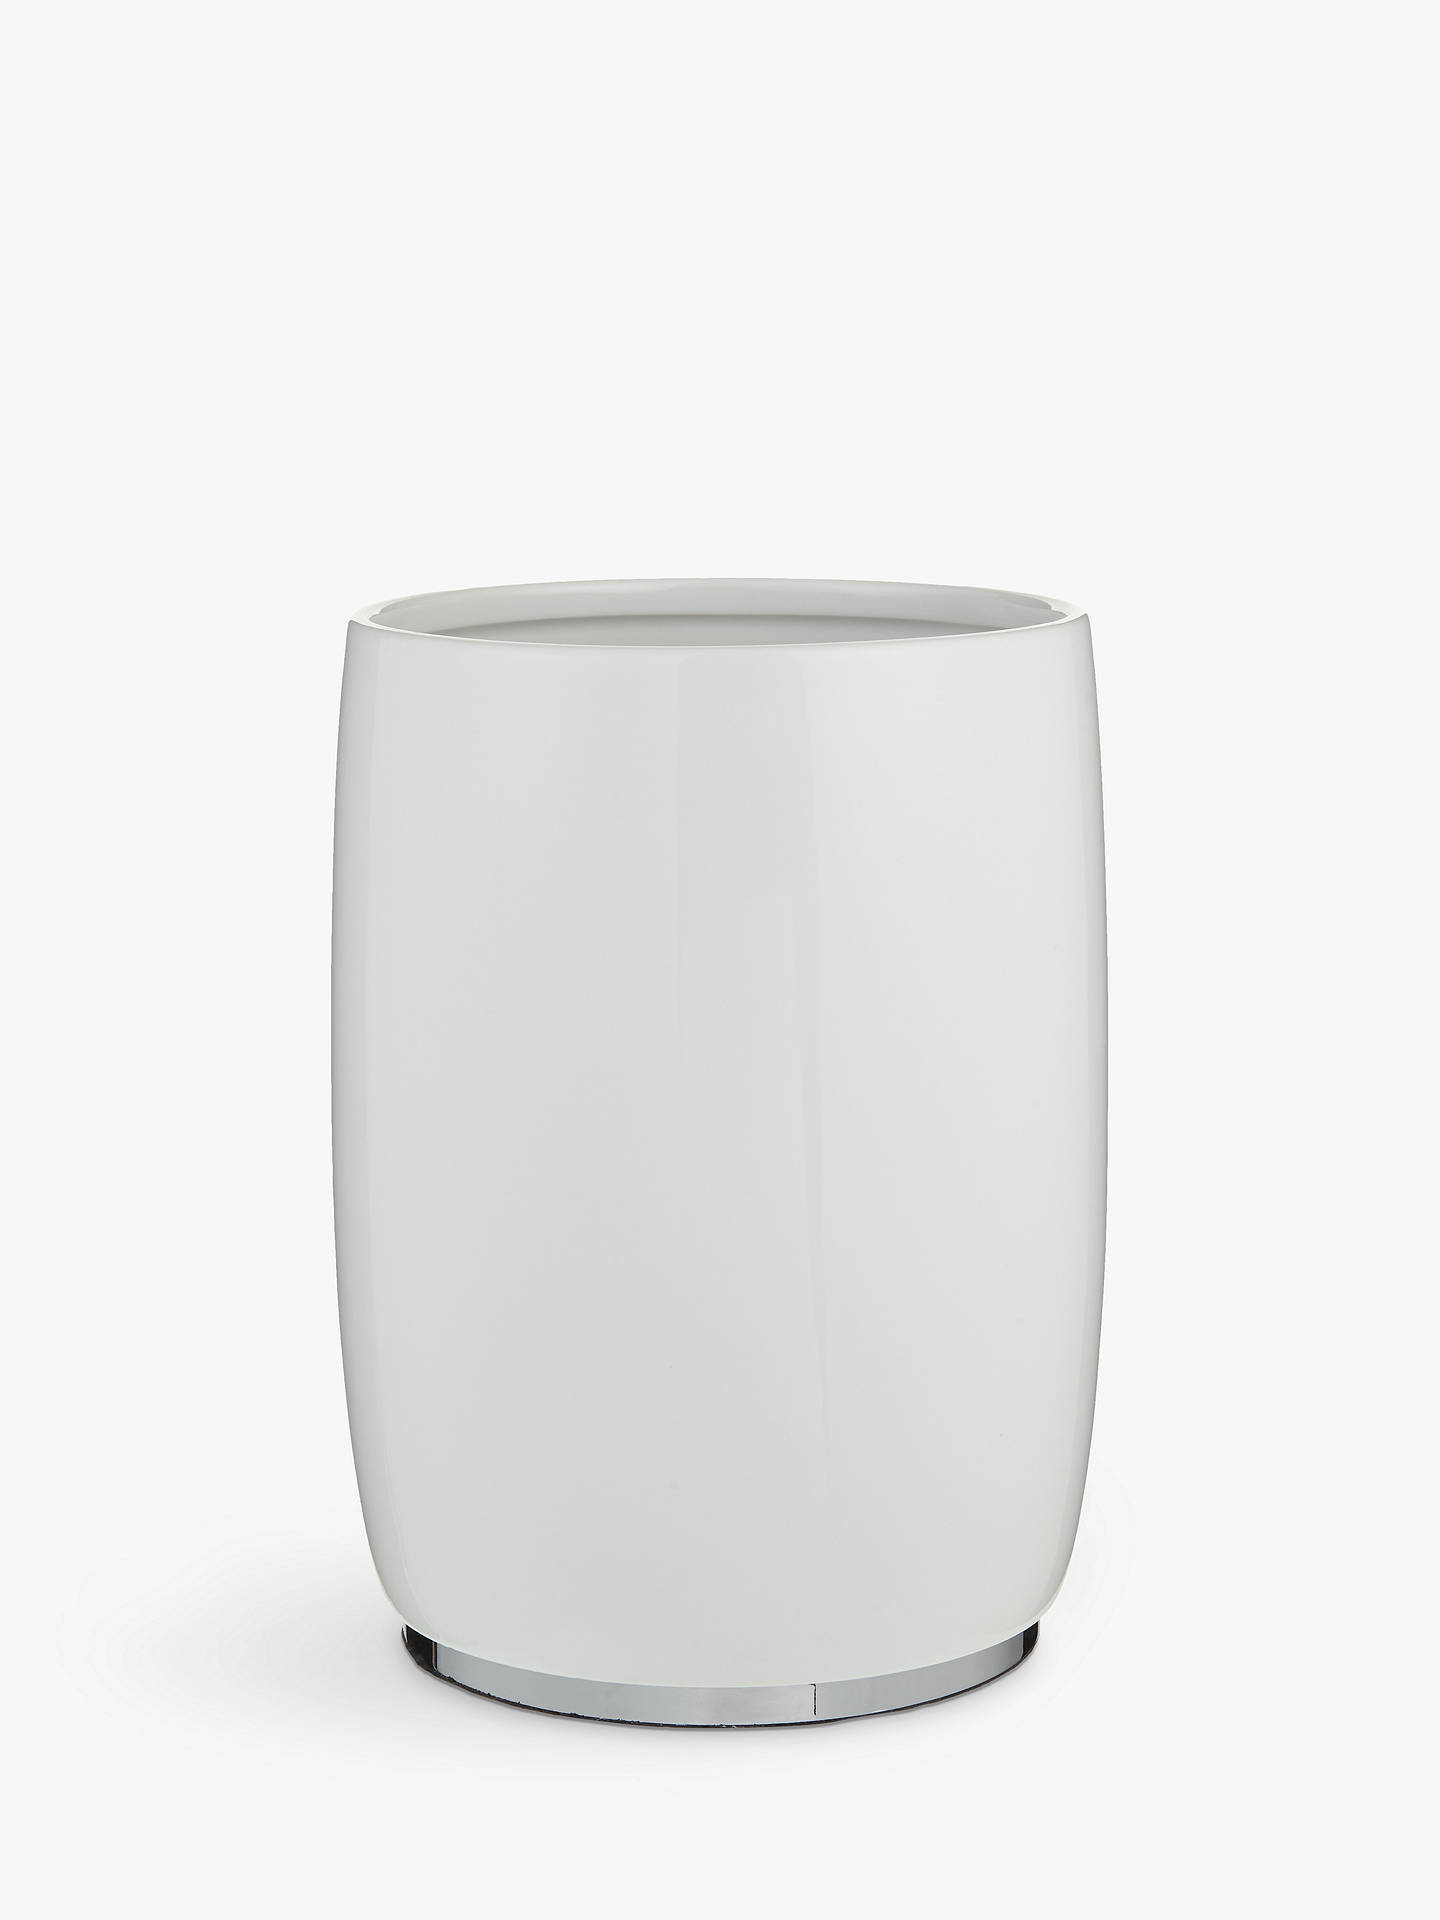 BuyJohn Lewis & Partners London Ceramic Bathroom Bin Online at johnlewis.com